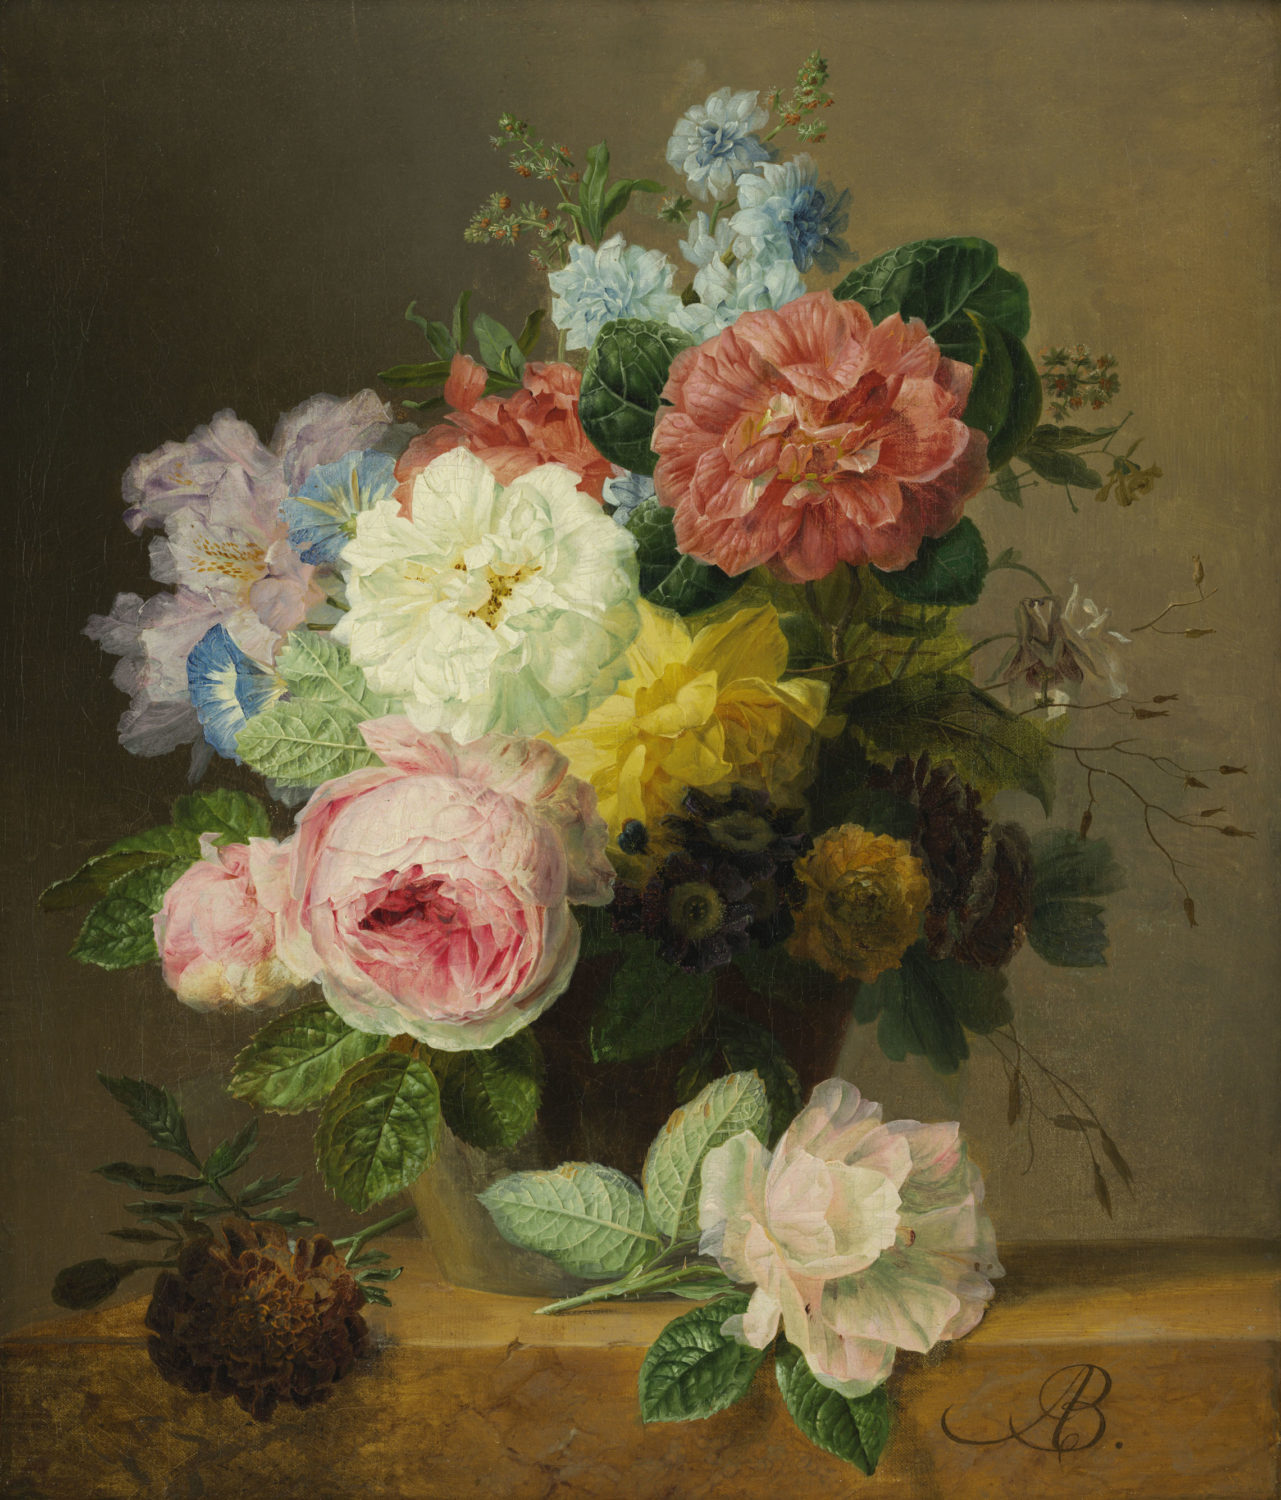 Arnoldus Bloemers | A still life with flowers | Kunsthandel Bies | Bies Gallery